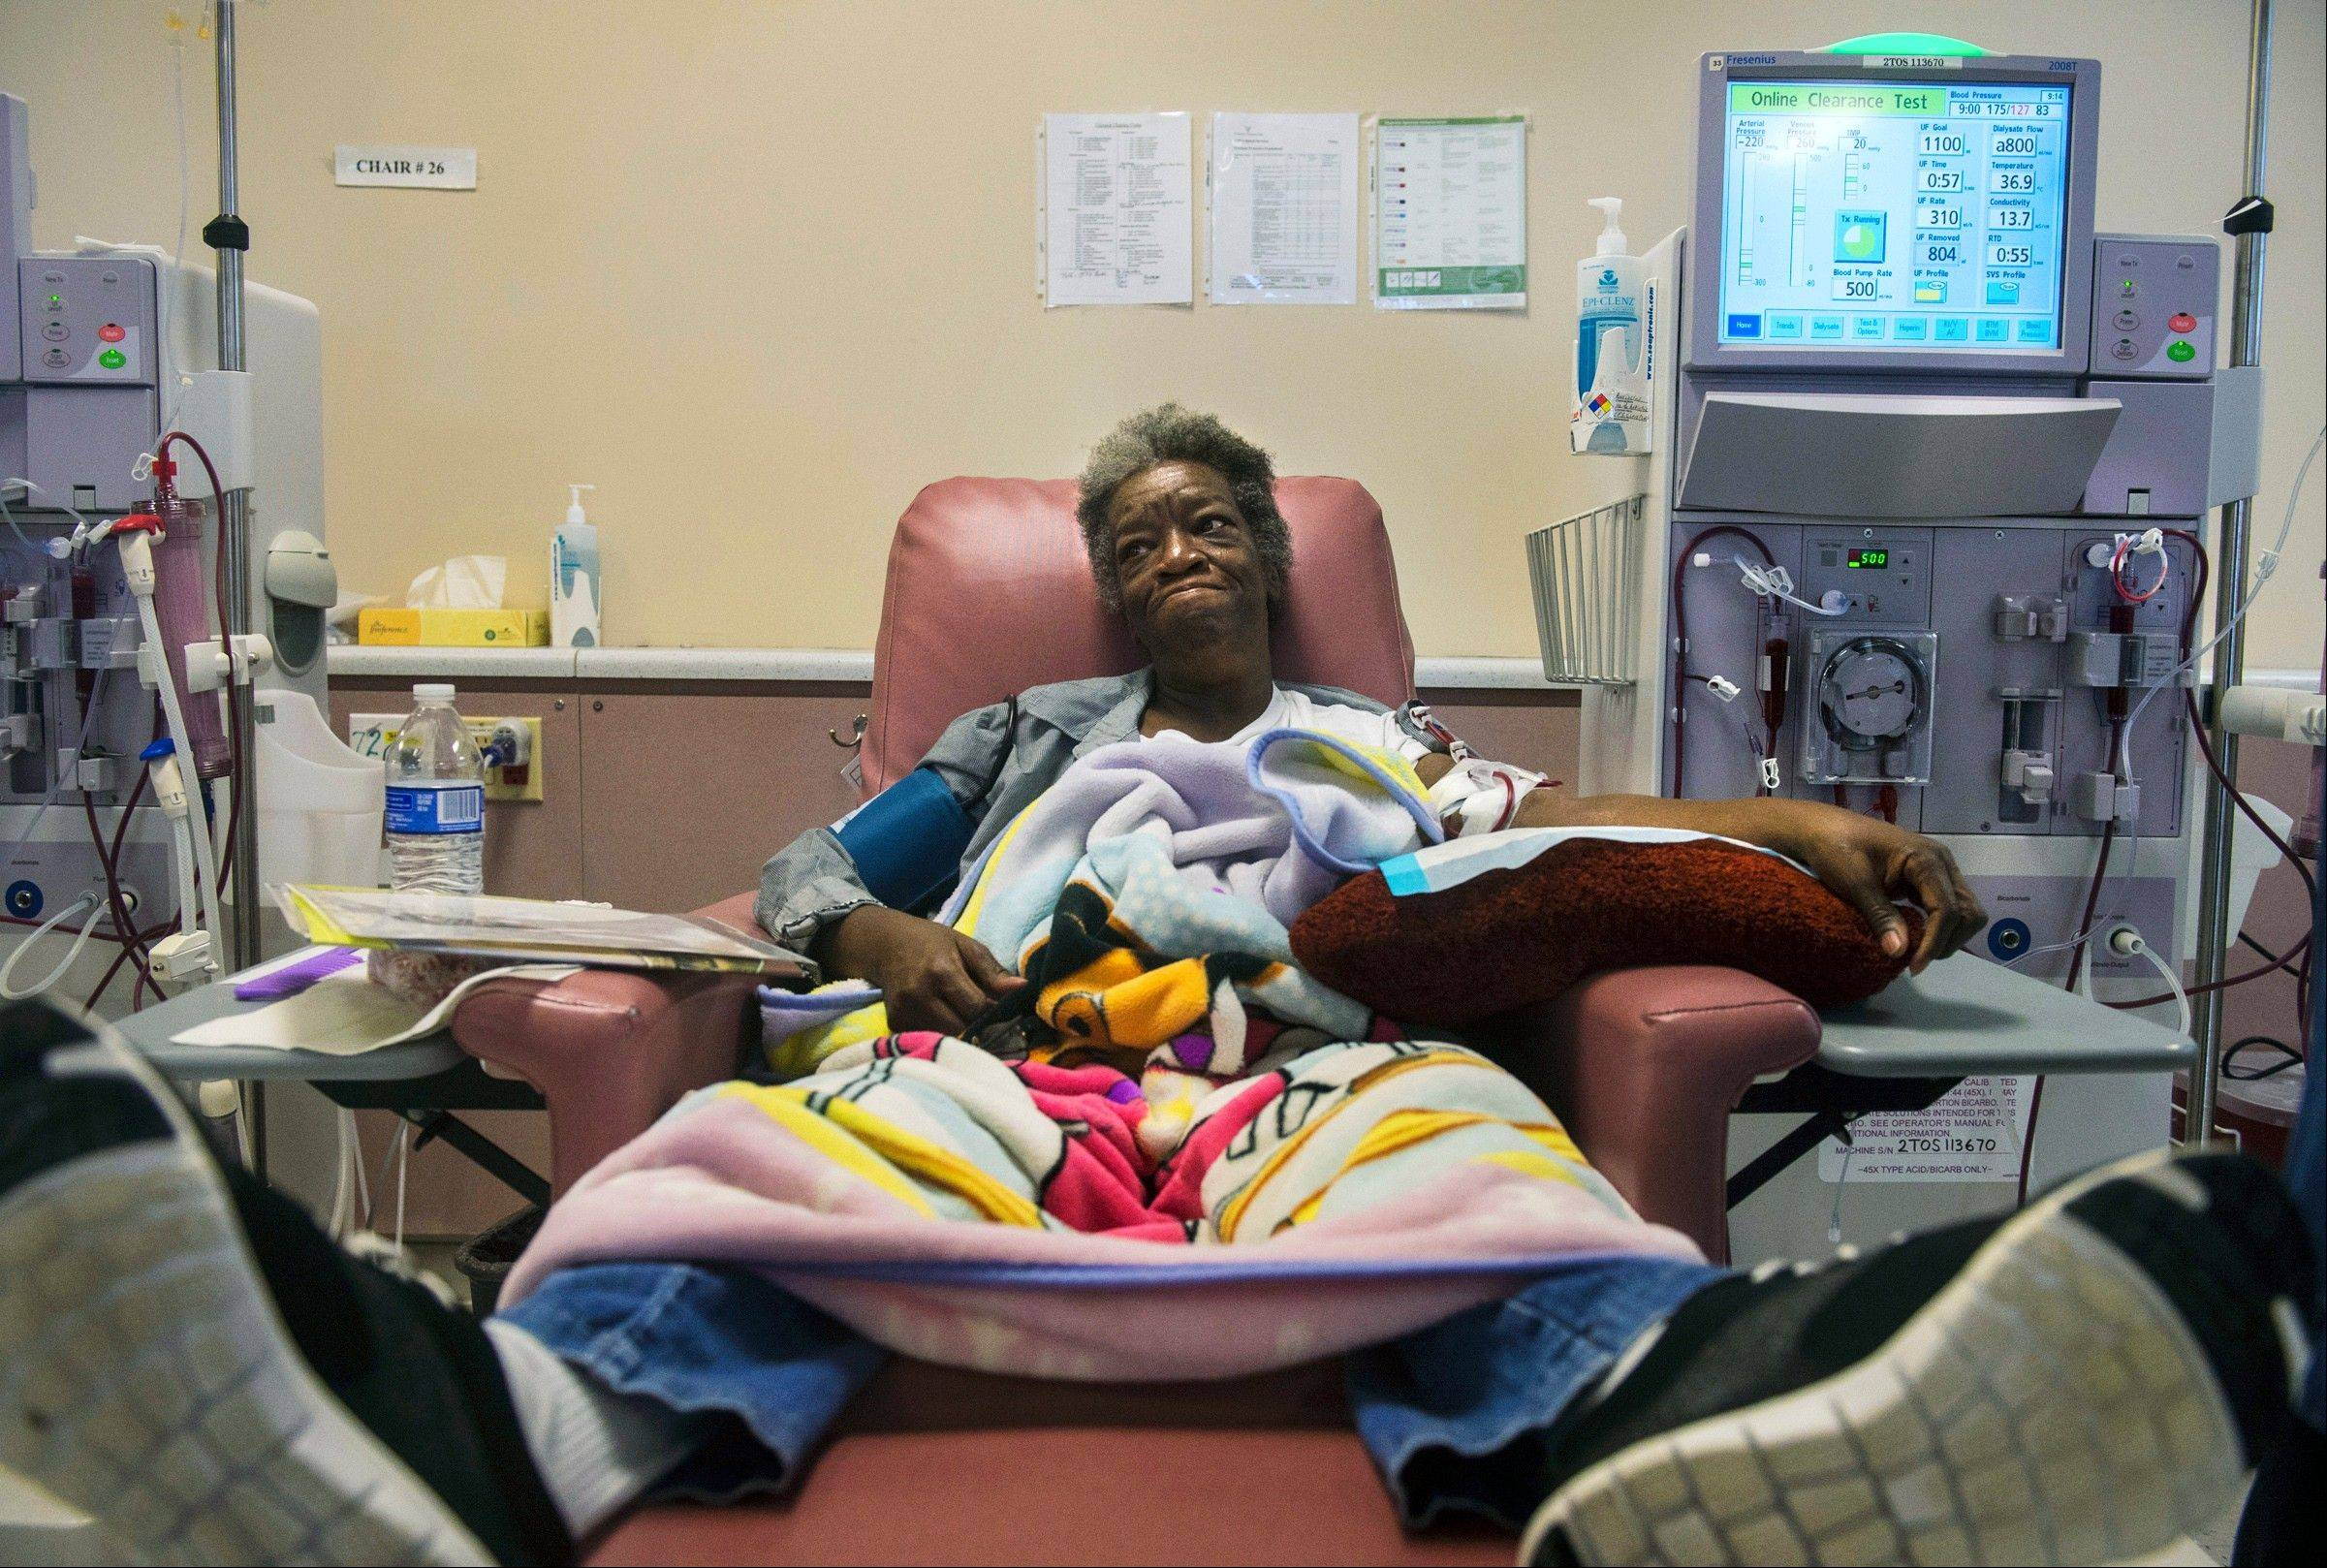 Martina Rutherford receives dialysis treatment at Fresenius Medical Care in Peoria a four-hour process that she must endure three times a week.